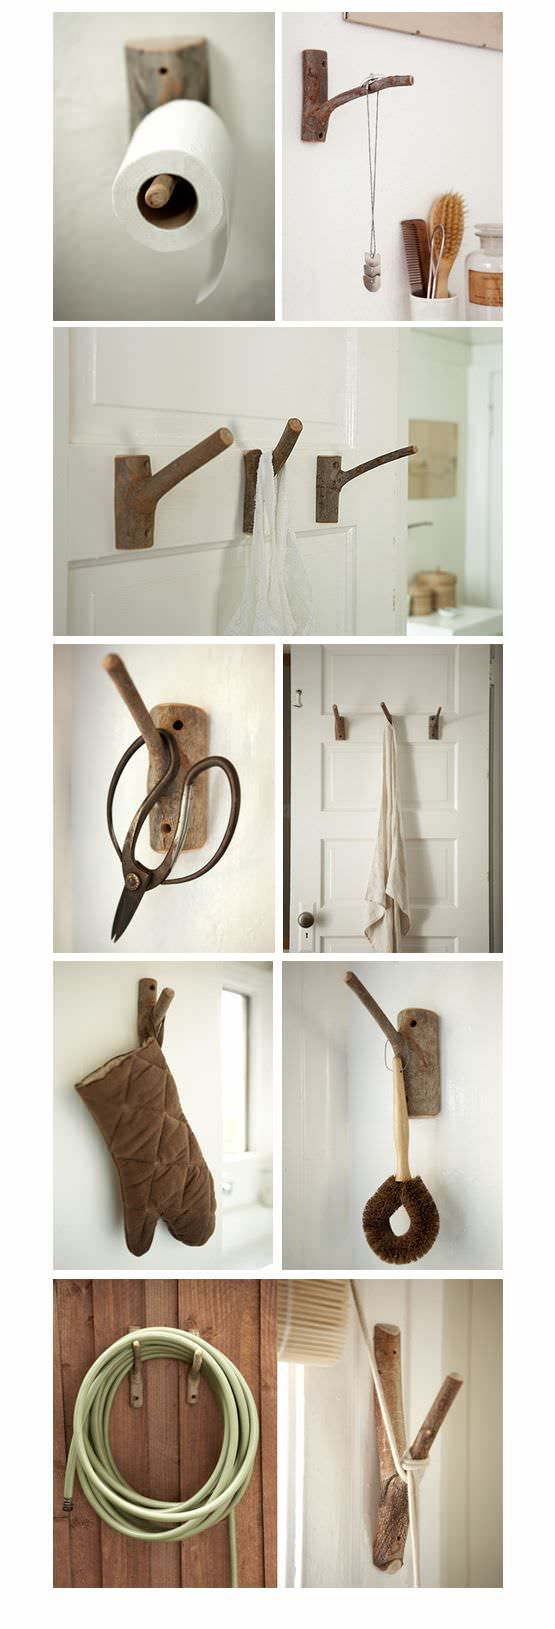 Diy: Branch Hooks Do-It-Yourself Ideas Wood & Organic